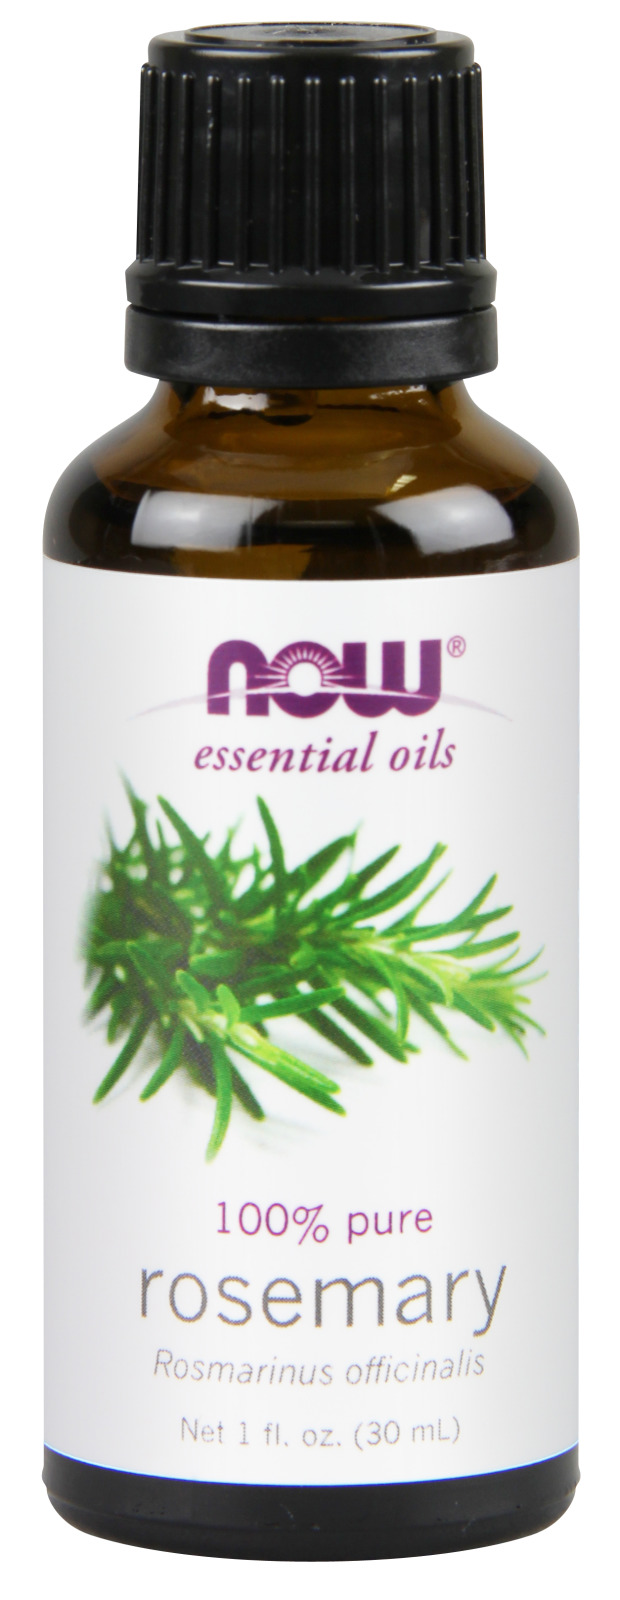 Rosemary Oil 4 fl oz (118 ml) by NOW